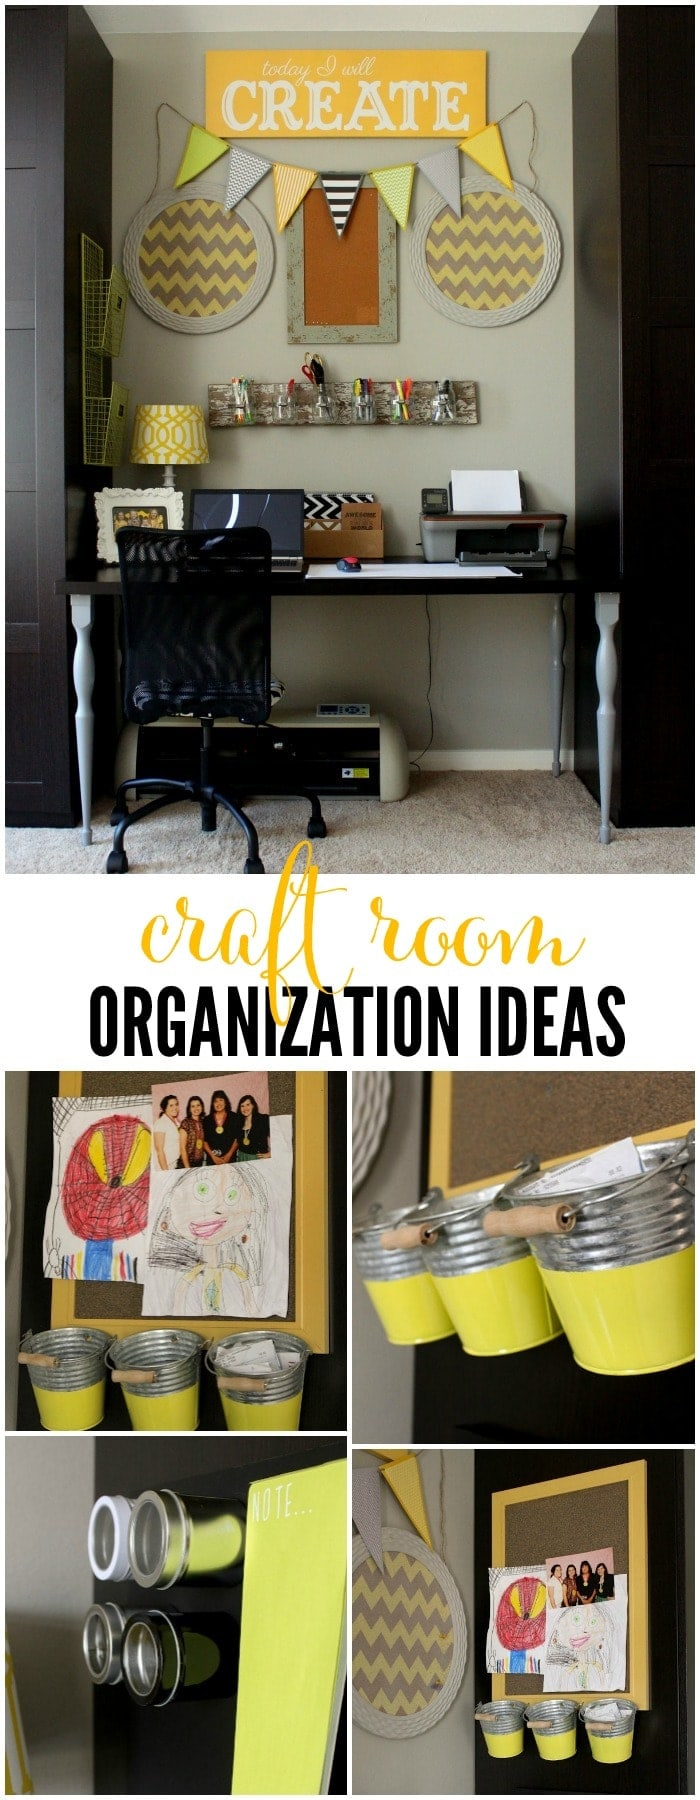 Craft room organization ideas lil 39 luna for Craft supplies organization ideas